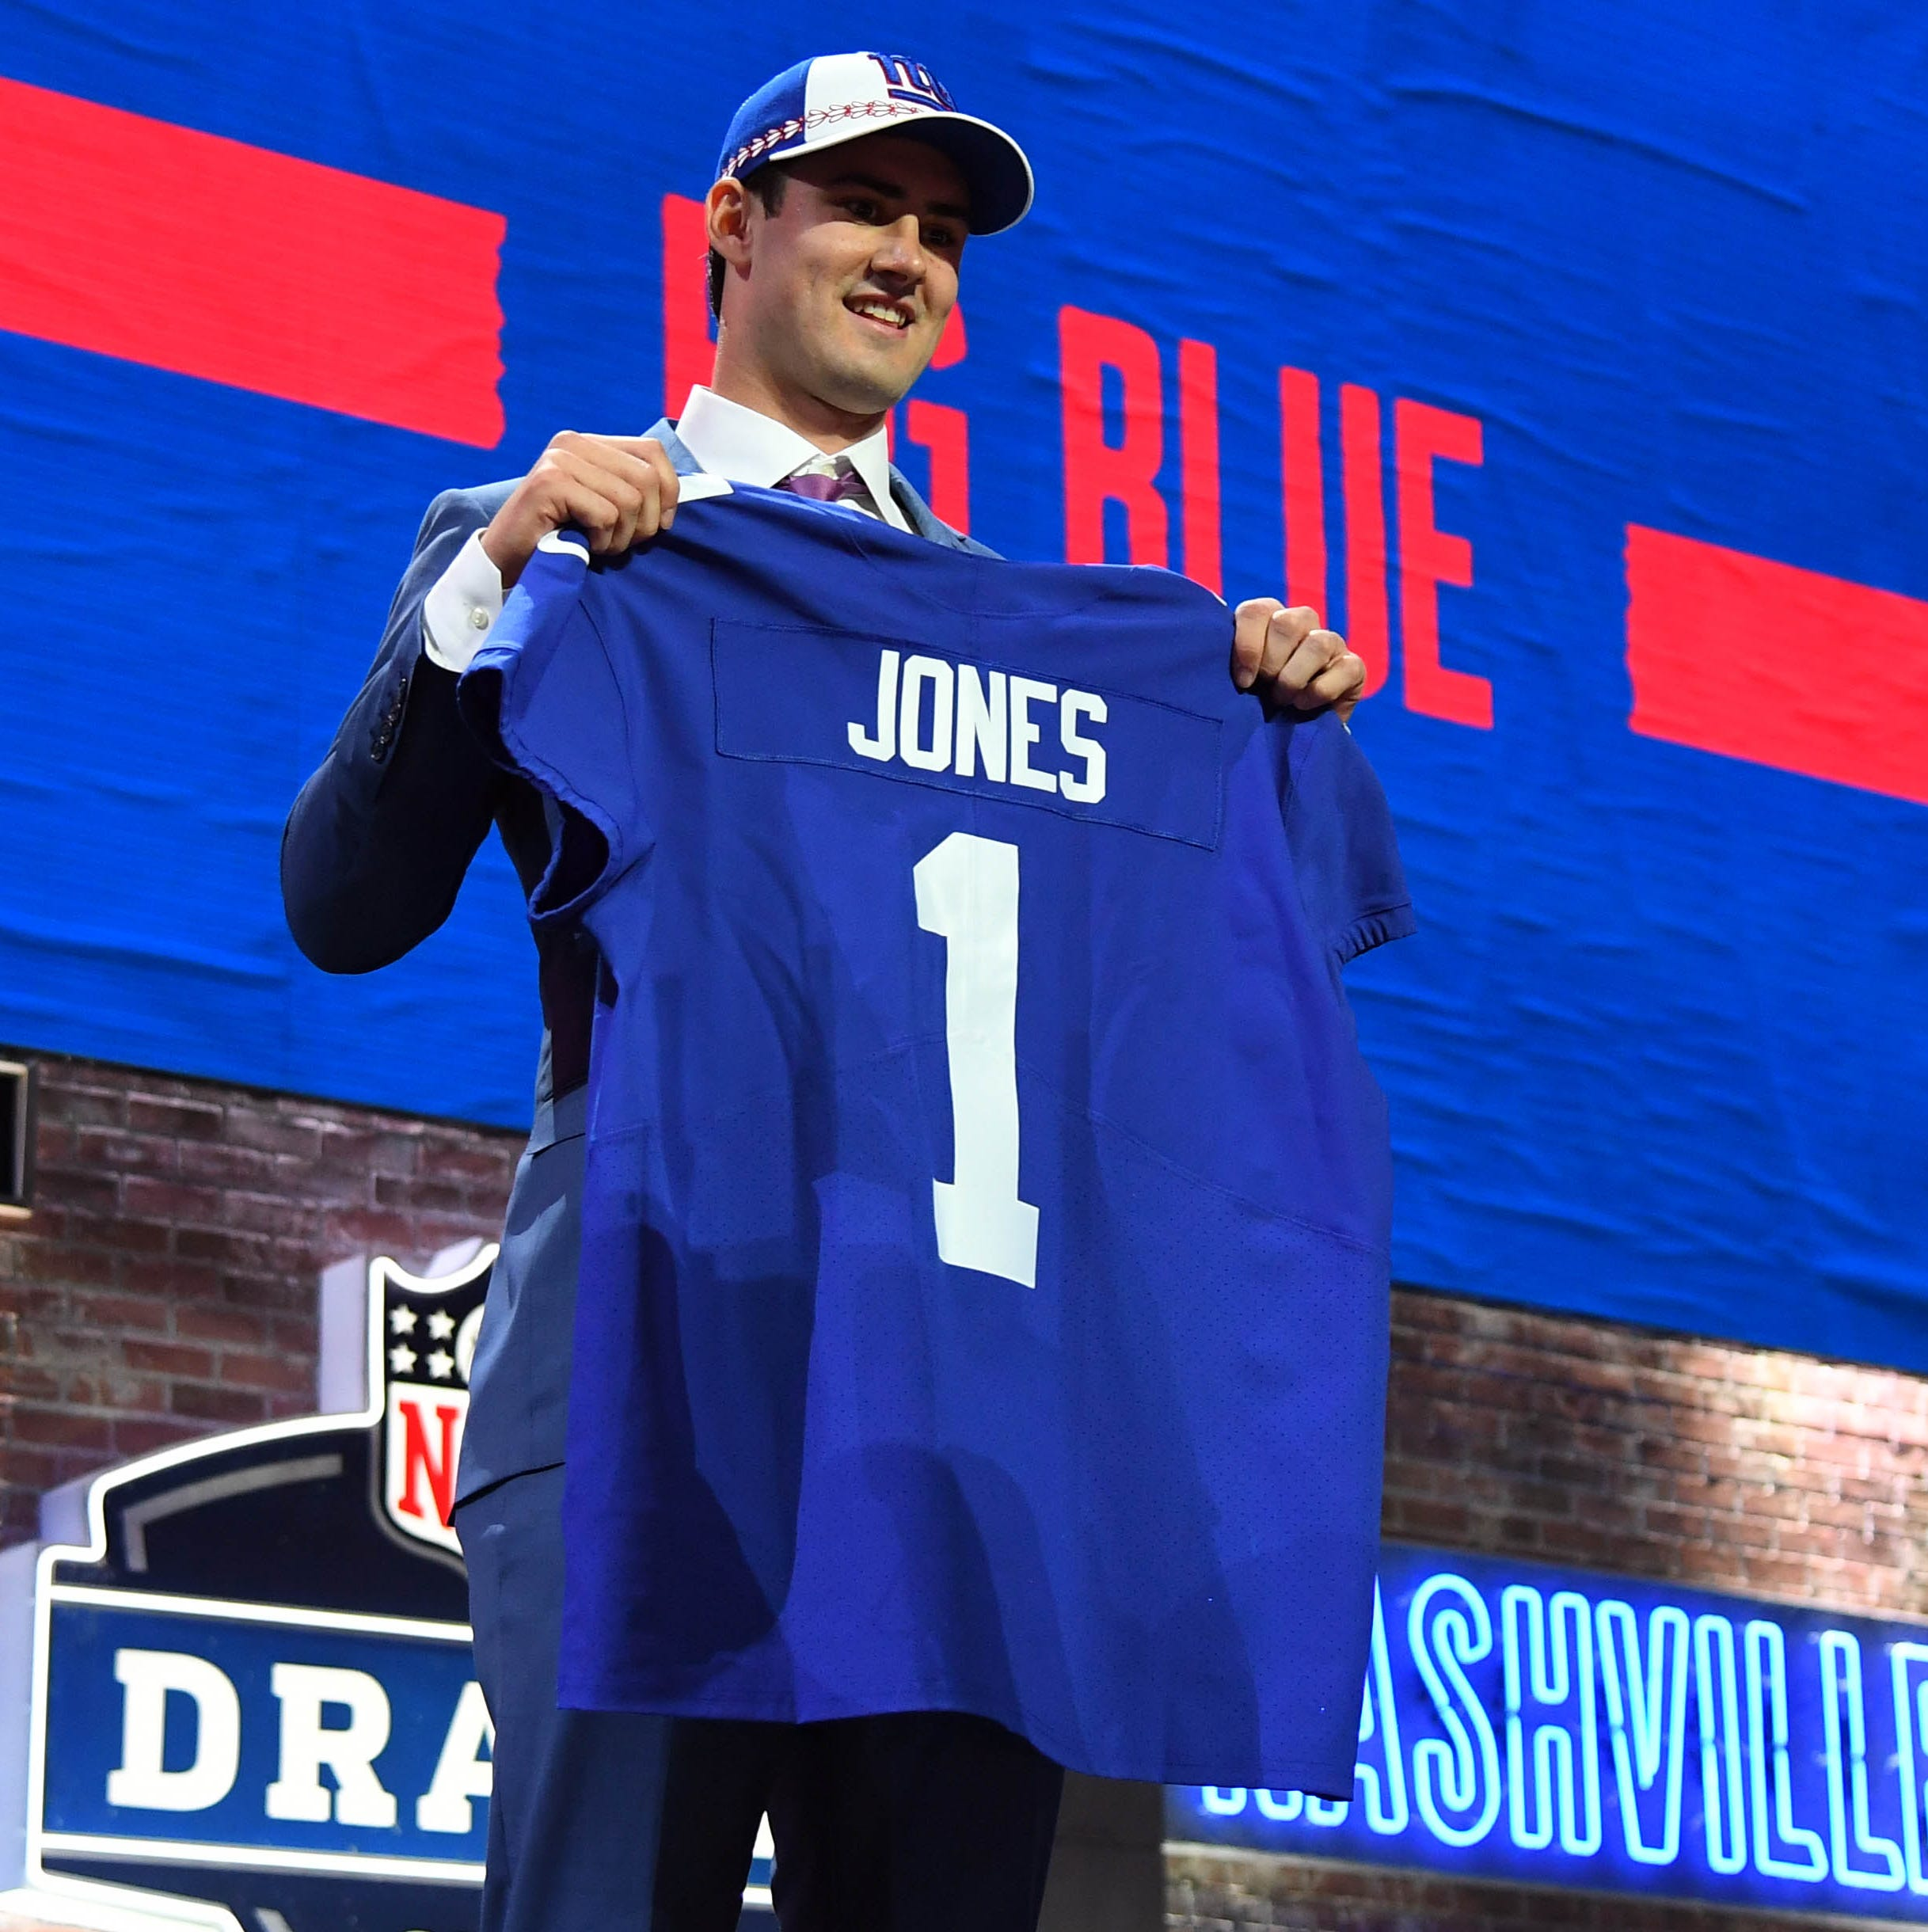 NFL Draft: NY Giants fans take to Twitter to react Daniel Jones pick